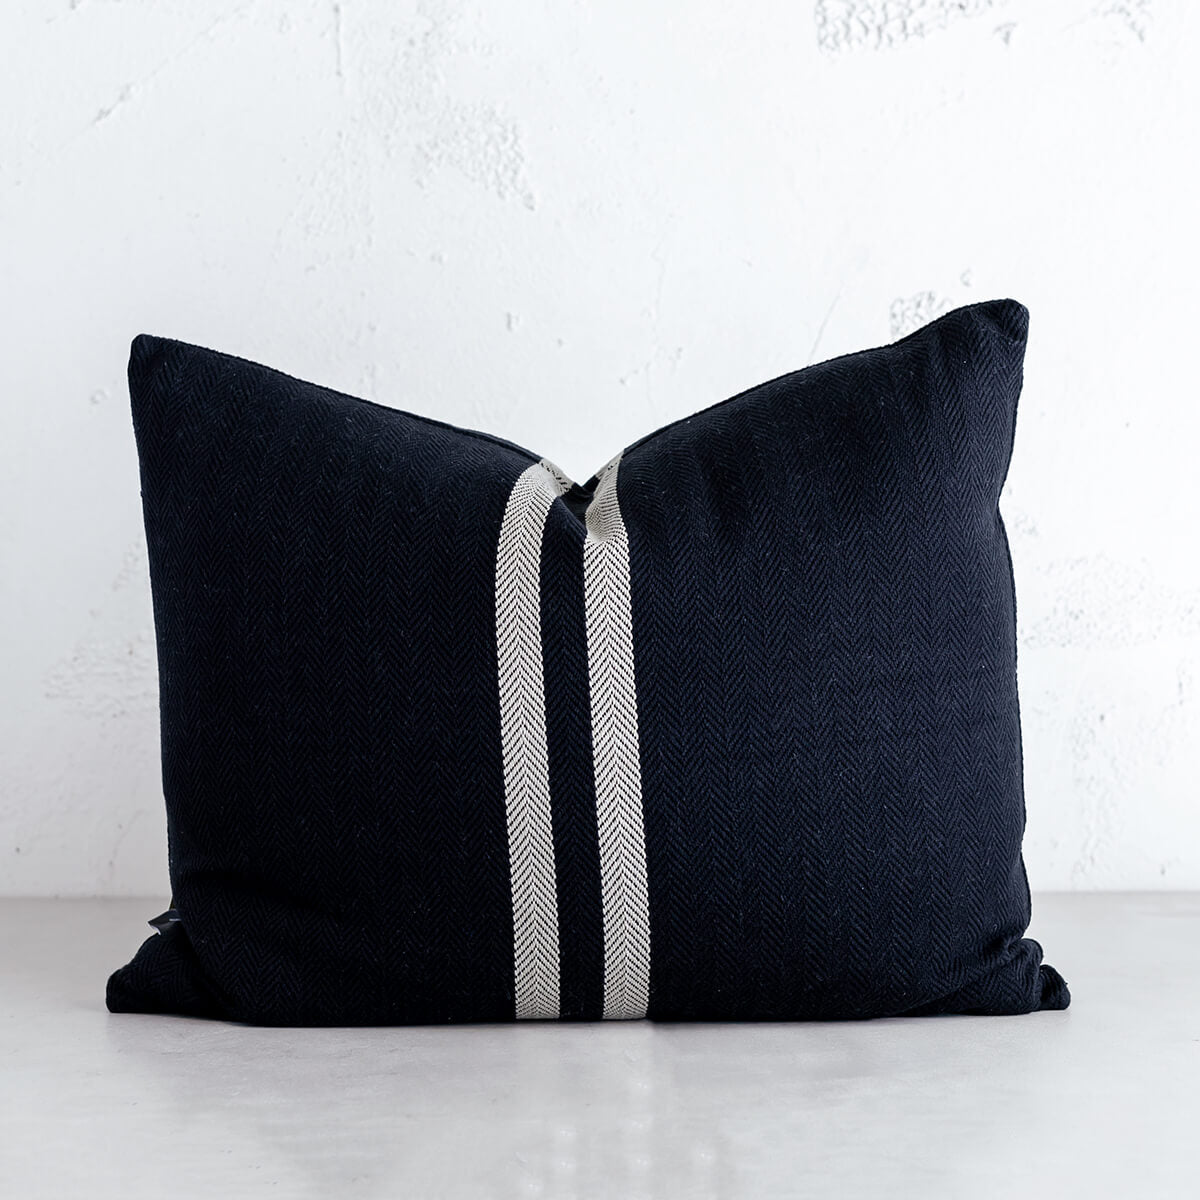 SIMPATICO CUSHION  |  60 x 50cm  |  BLACK + NATURAL STRIPE  |  FEATHER FILLED SCATTER CUSHION